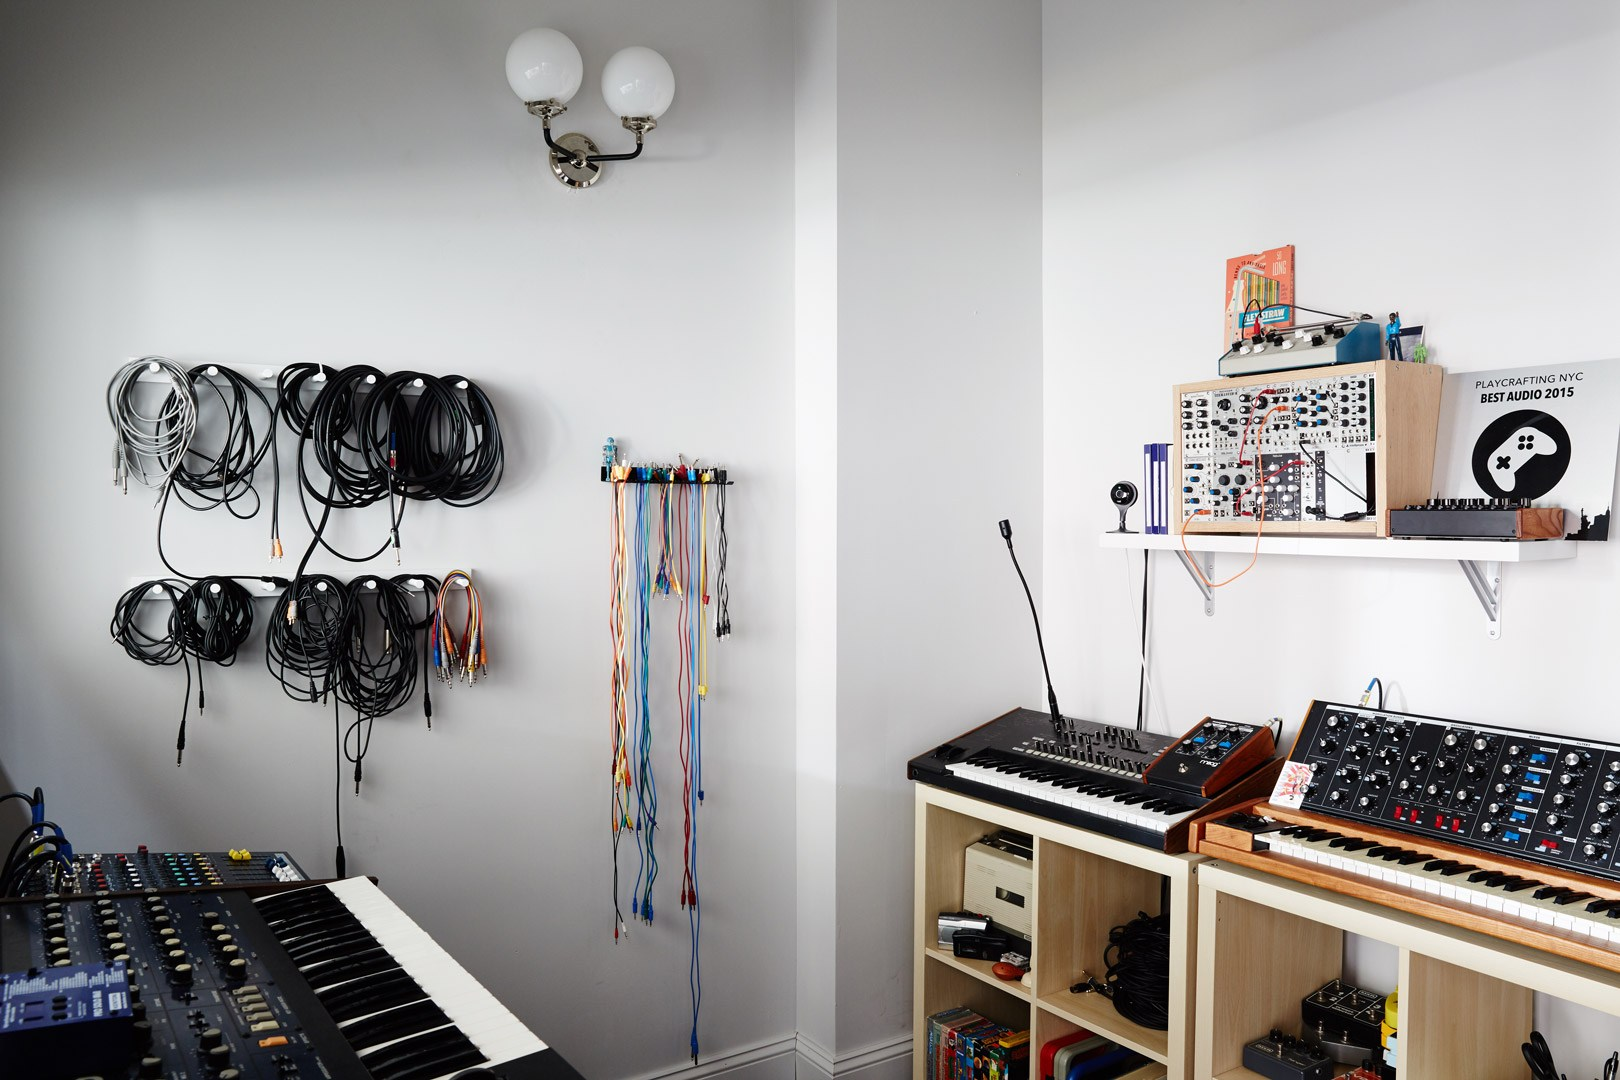 Musical gear inside the audio studio of the Dots office